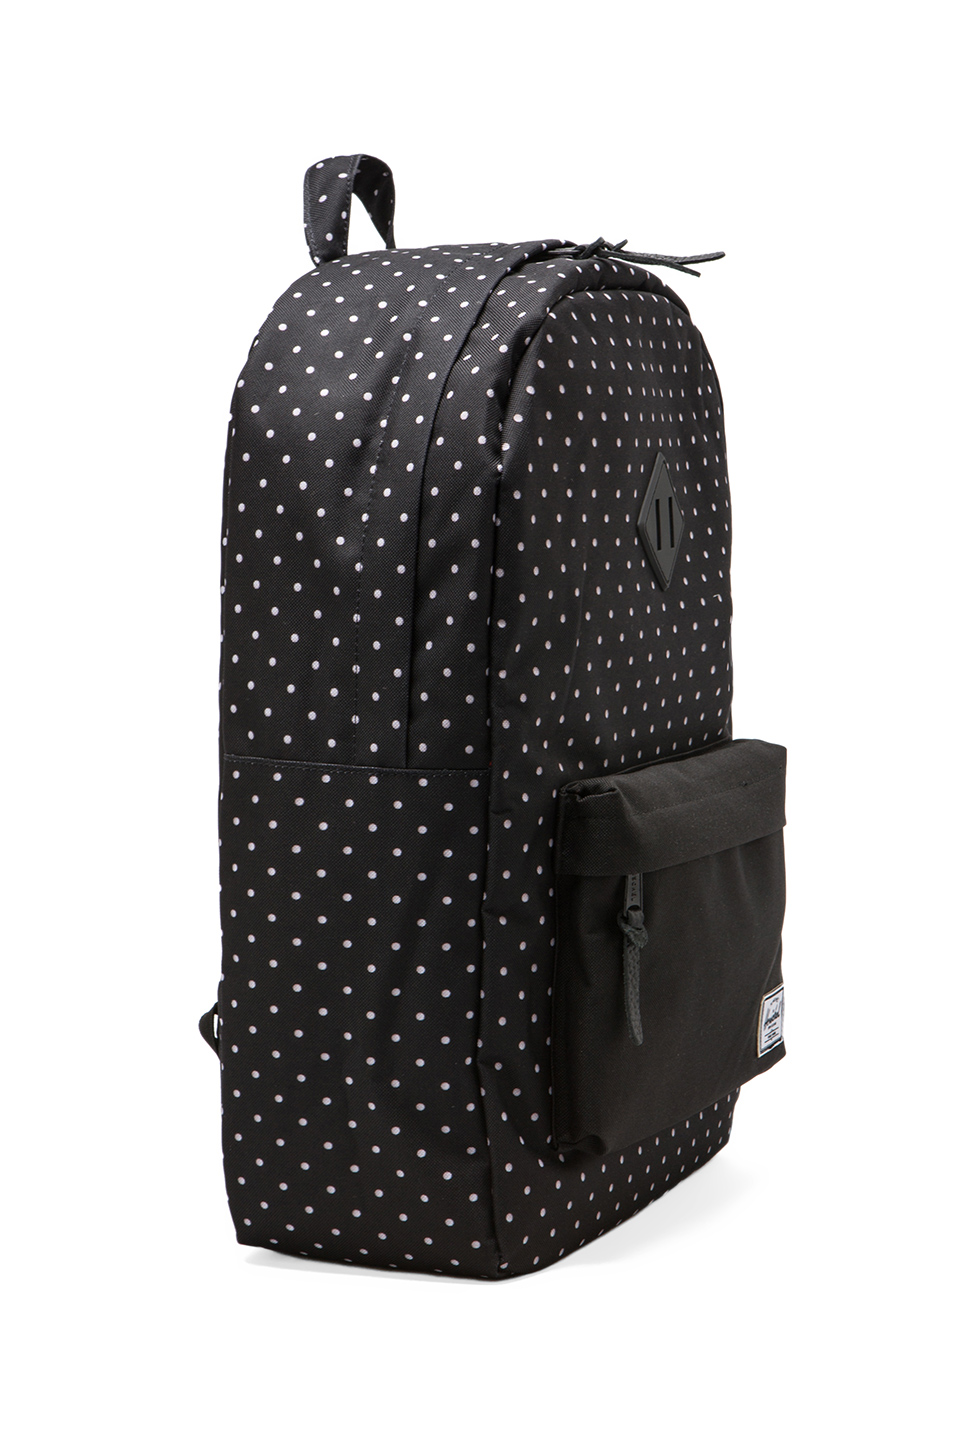 Herschel Supply Co. Heritage Polka Dot Backpack in Black/White